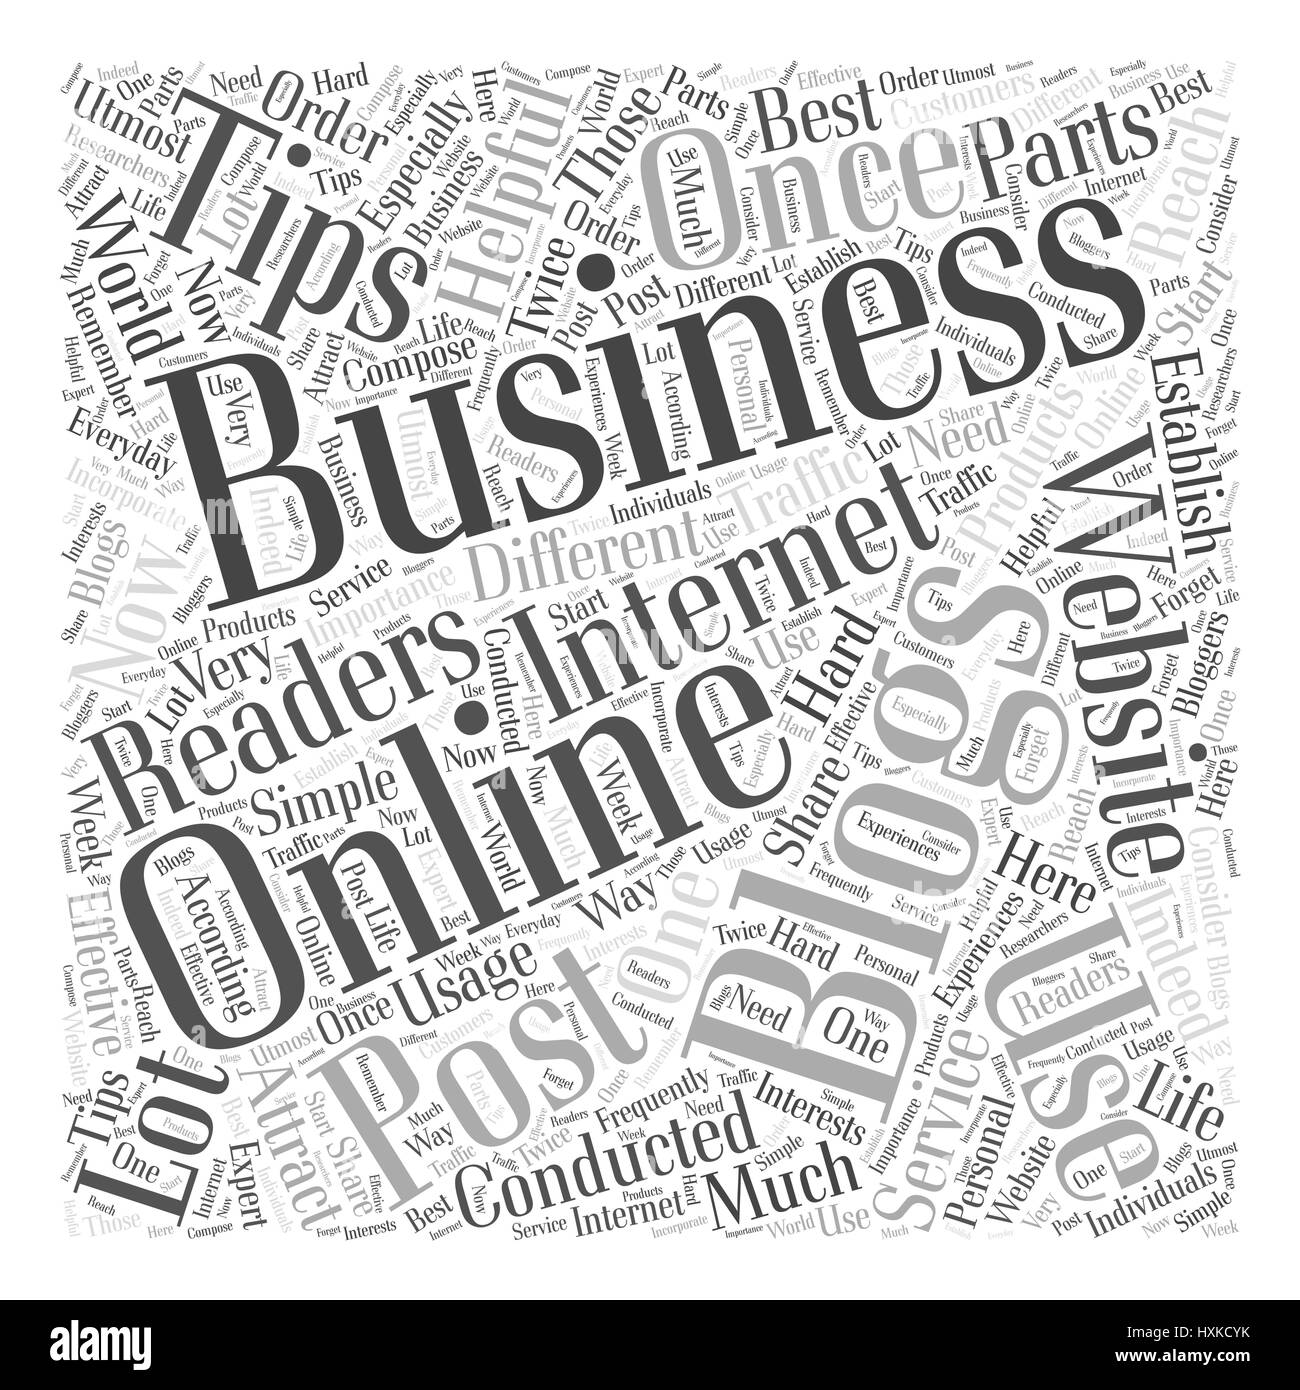 usage of blogging for business Word Cloud Concept - Stock Image